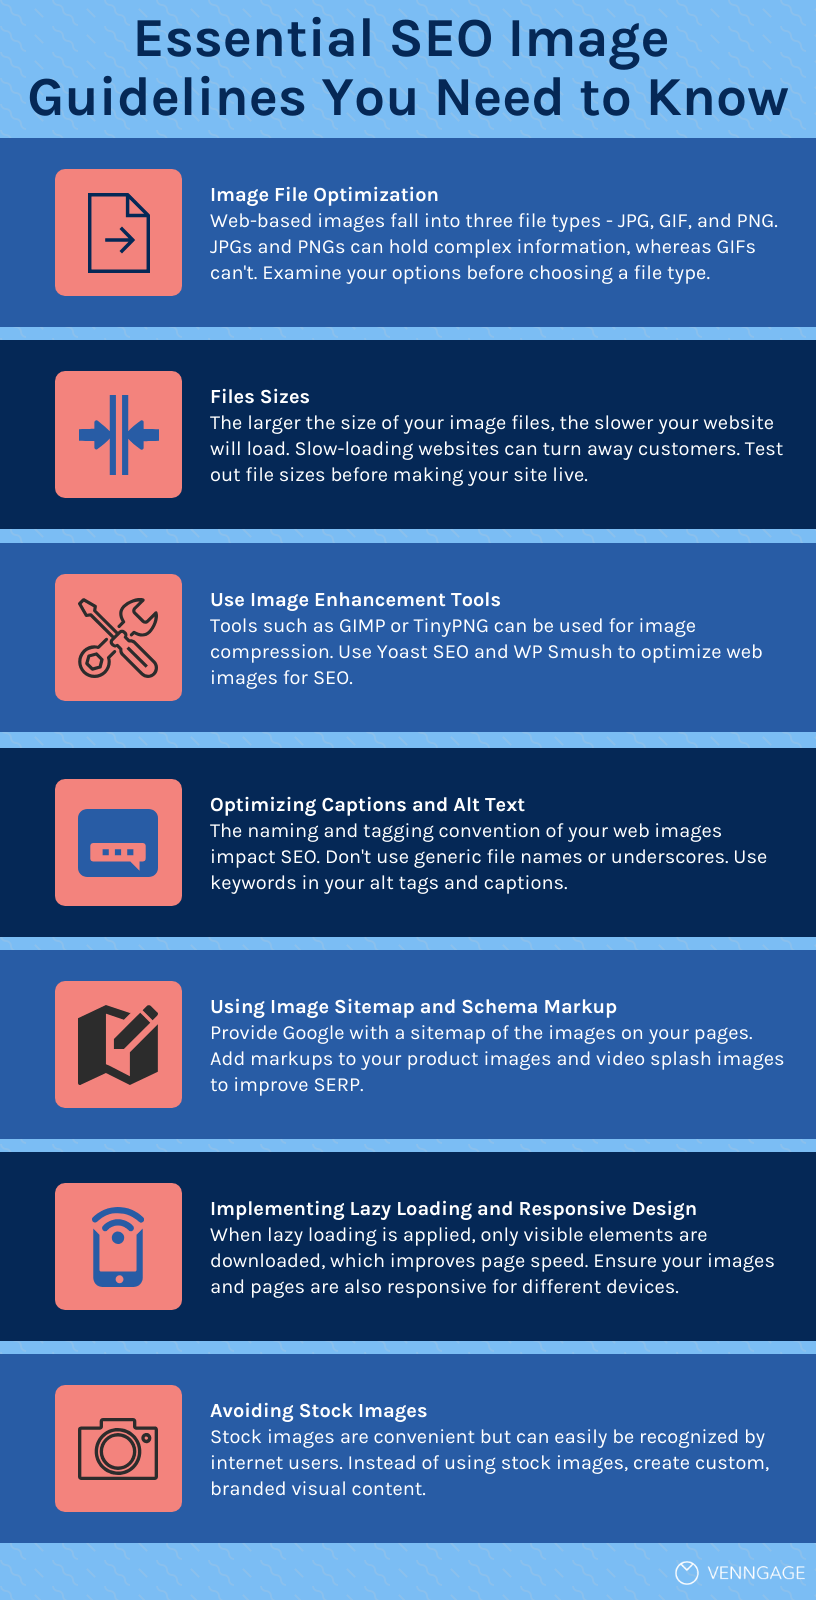 Infographic: essential image SEO guidelines you need to know